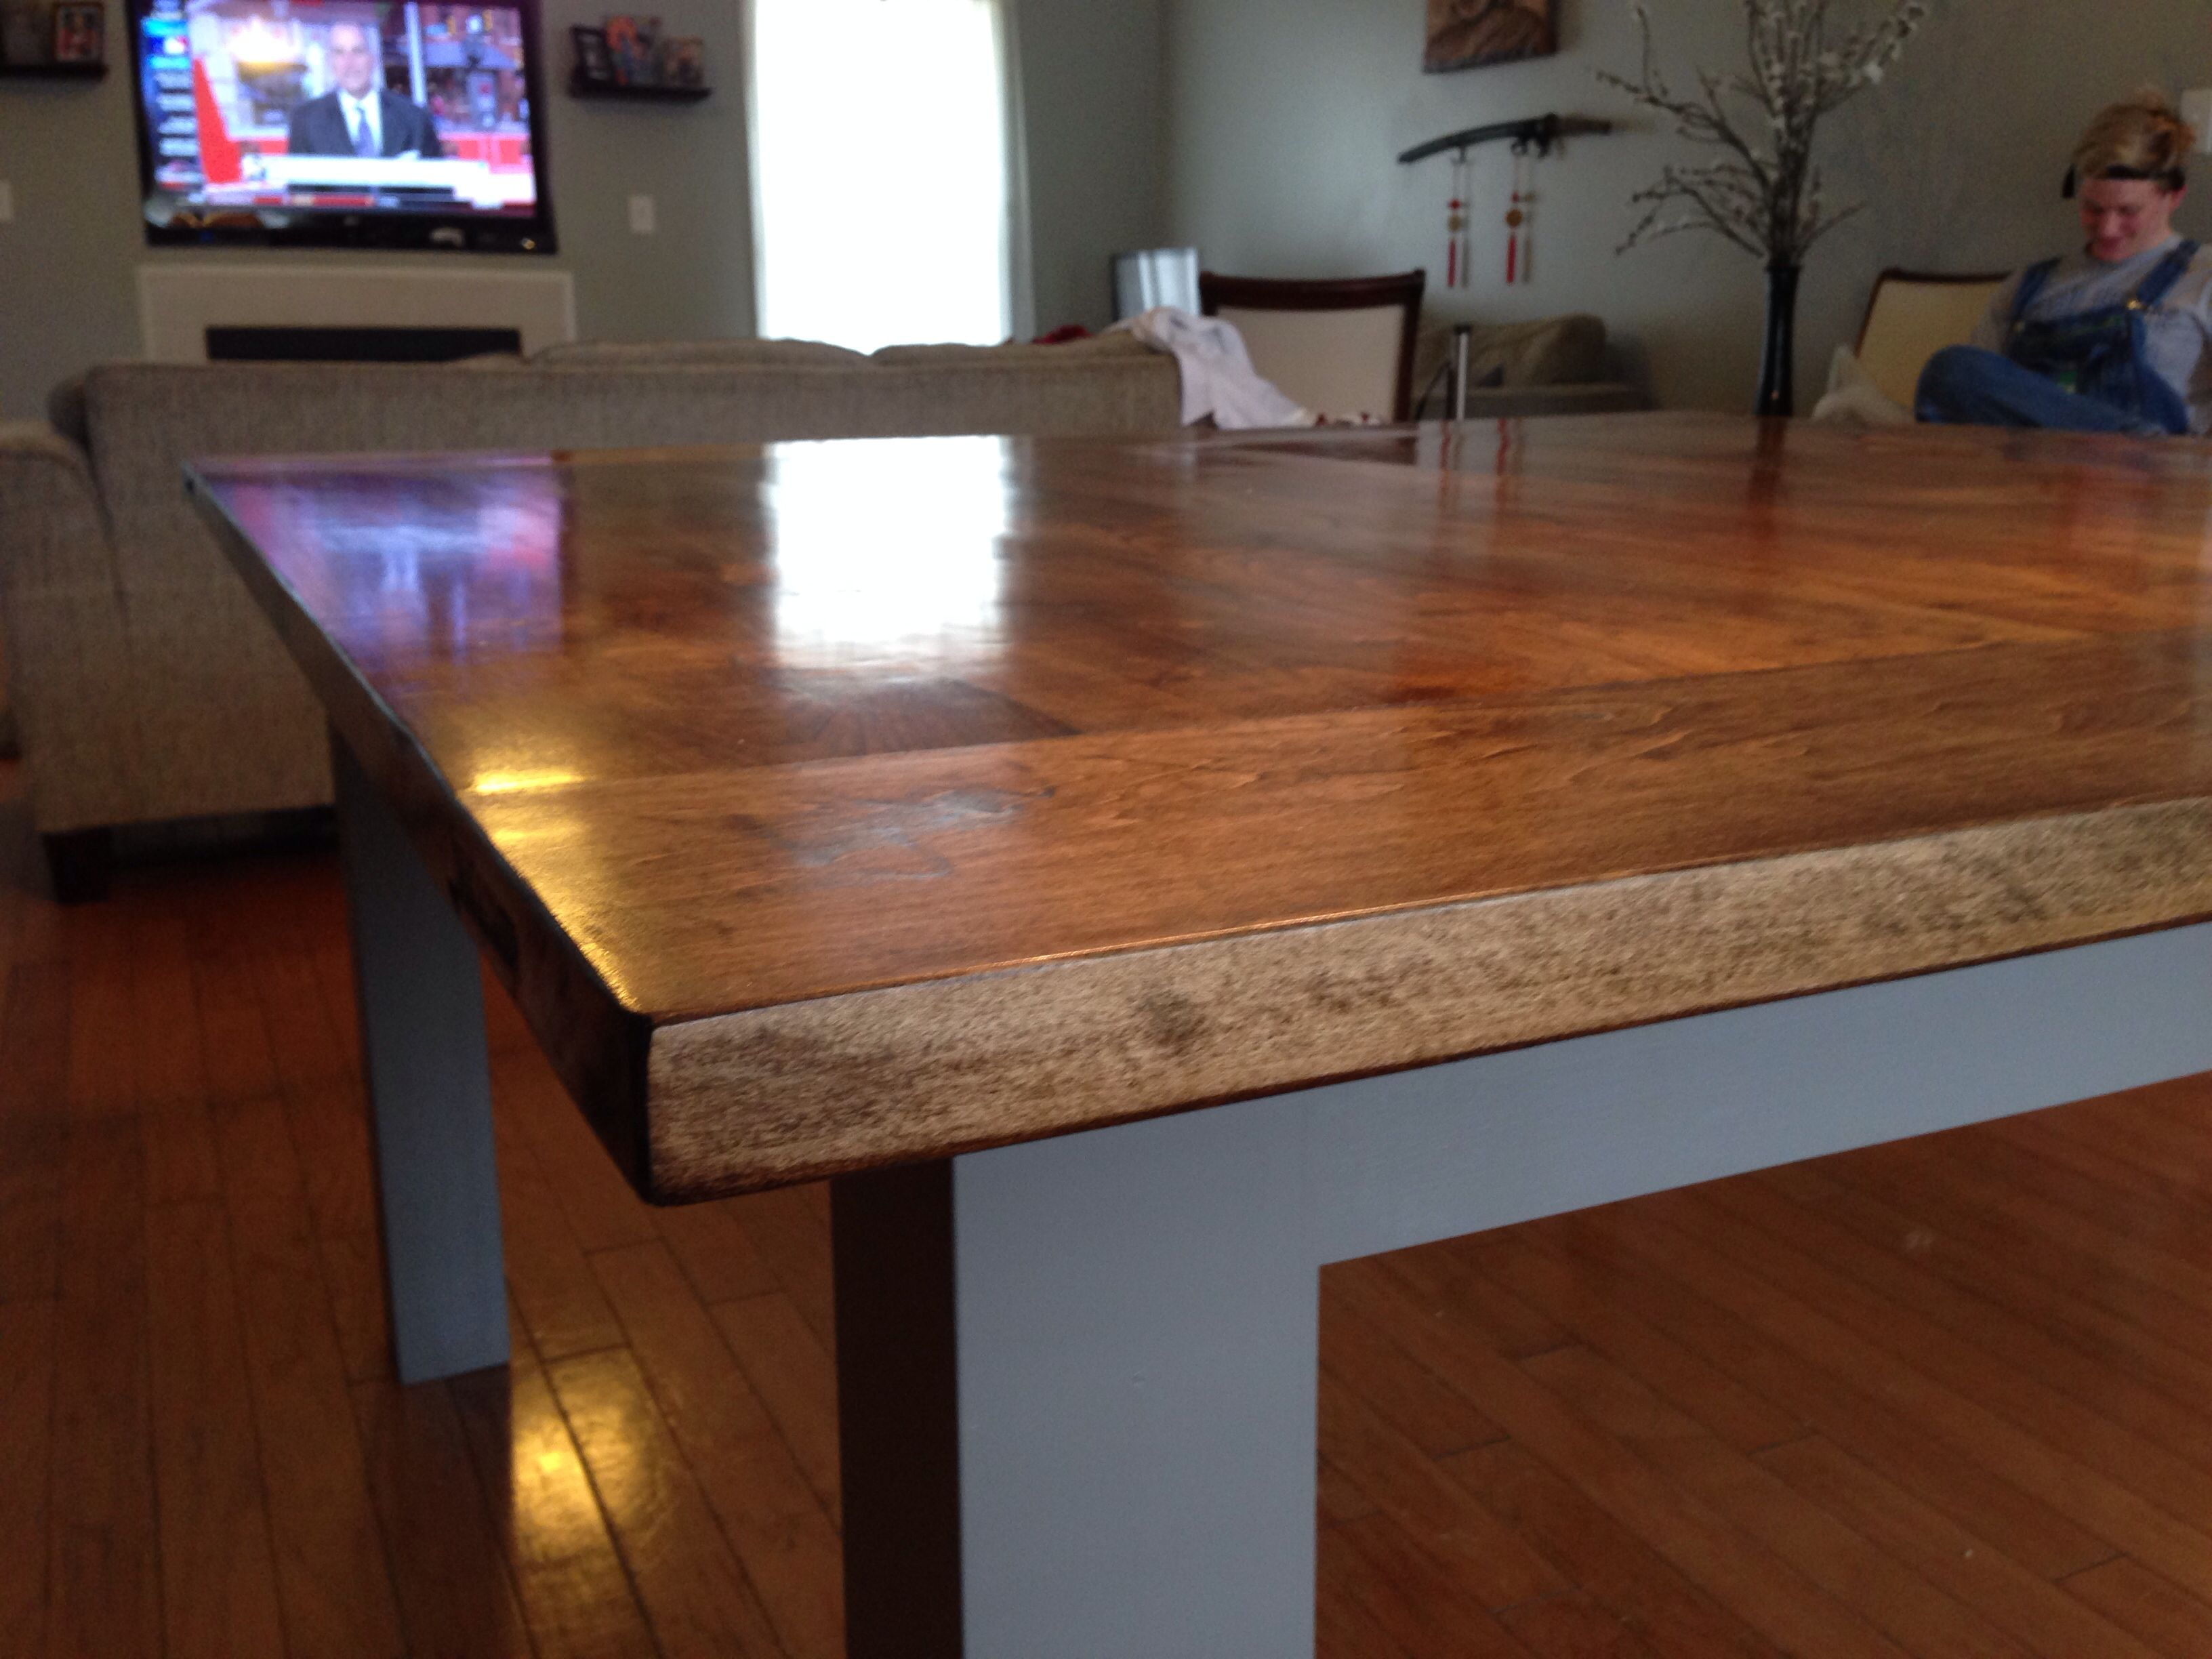 5 Coats Of Polyurethane Came Out Flawless On The Maple Dining Table